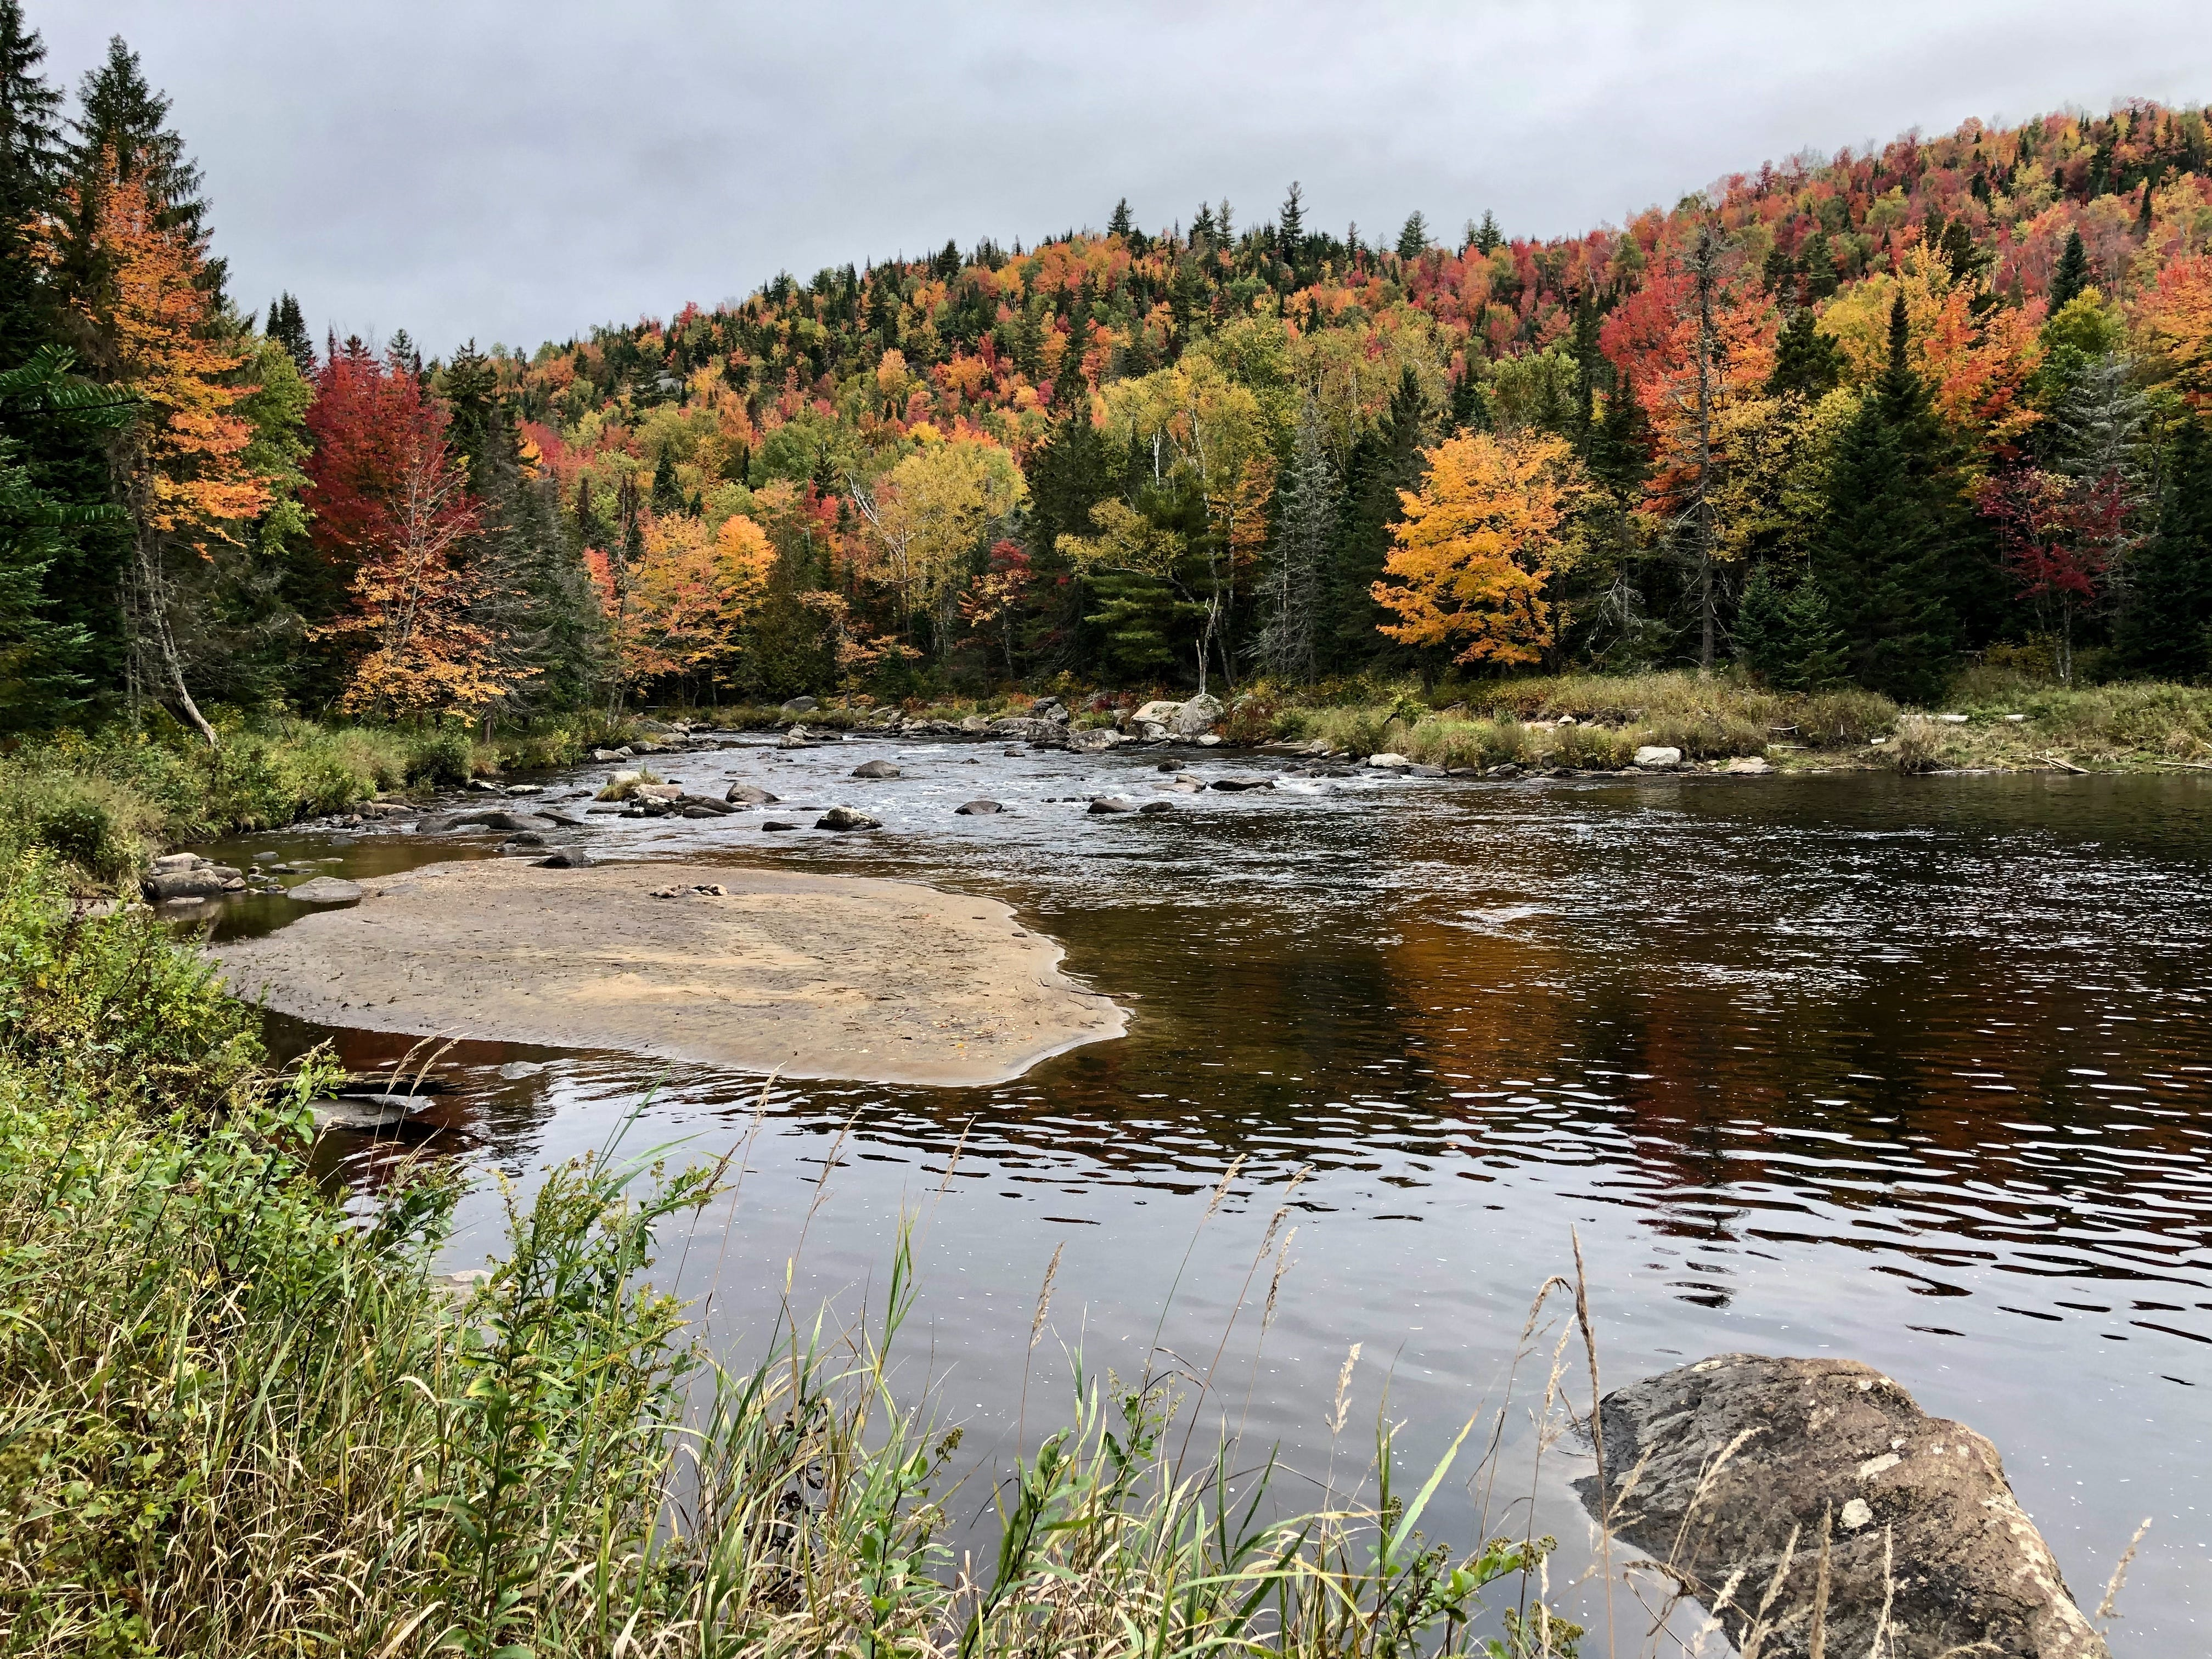 The Ausable River in New York's Adirondack Park on Oct. 6, 2018.